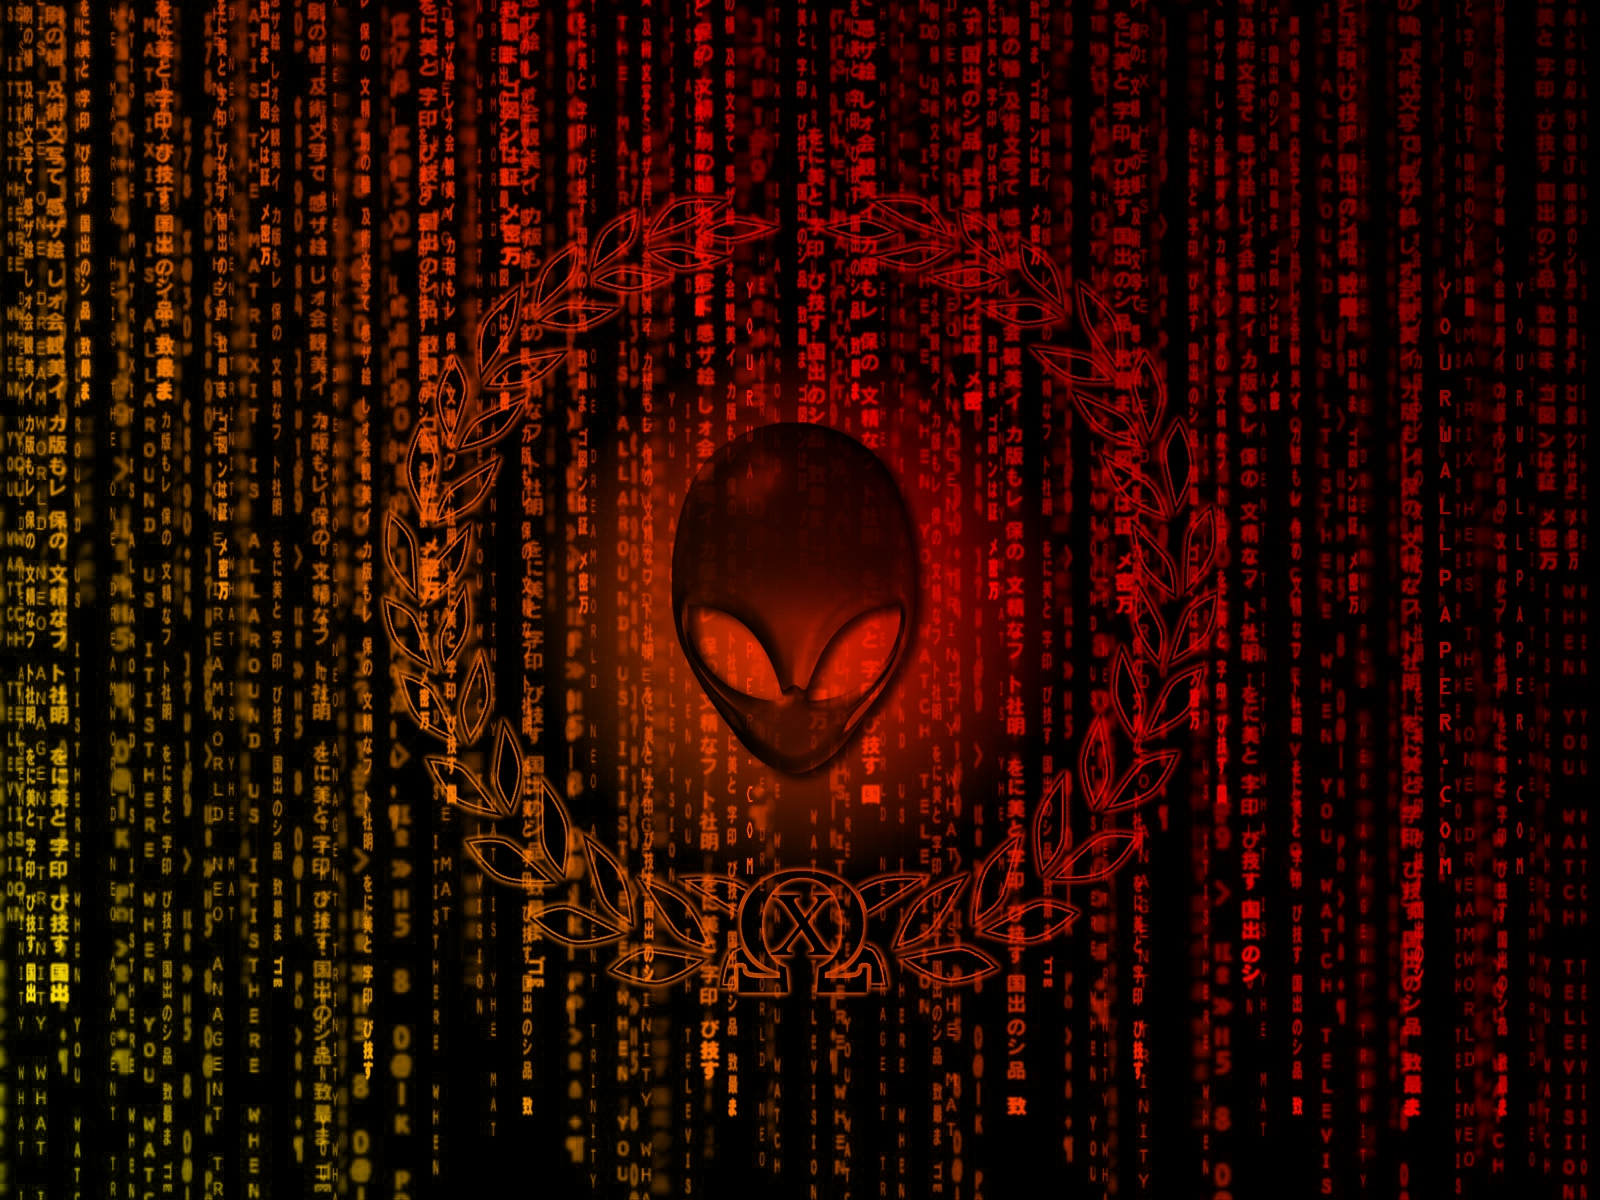 Alienware hd Wallpapers Red Alienware Wallpapers Red hd 1600x1200